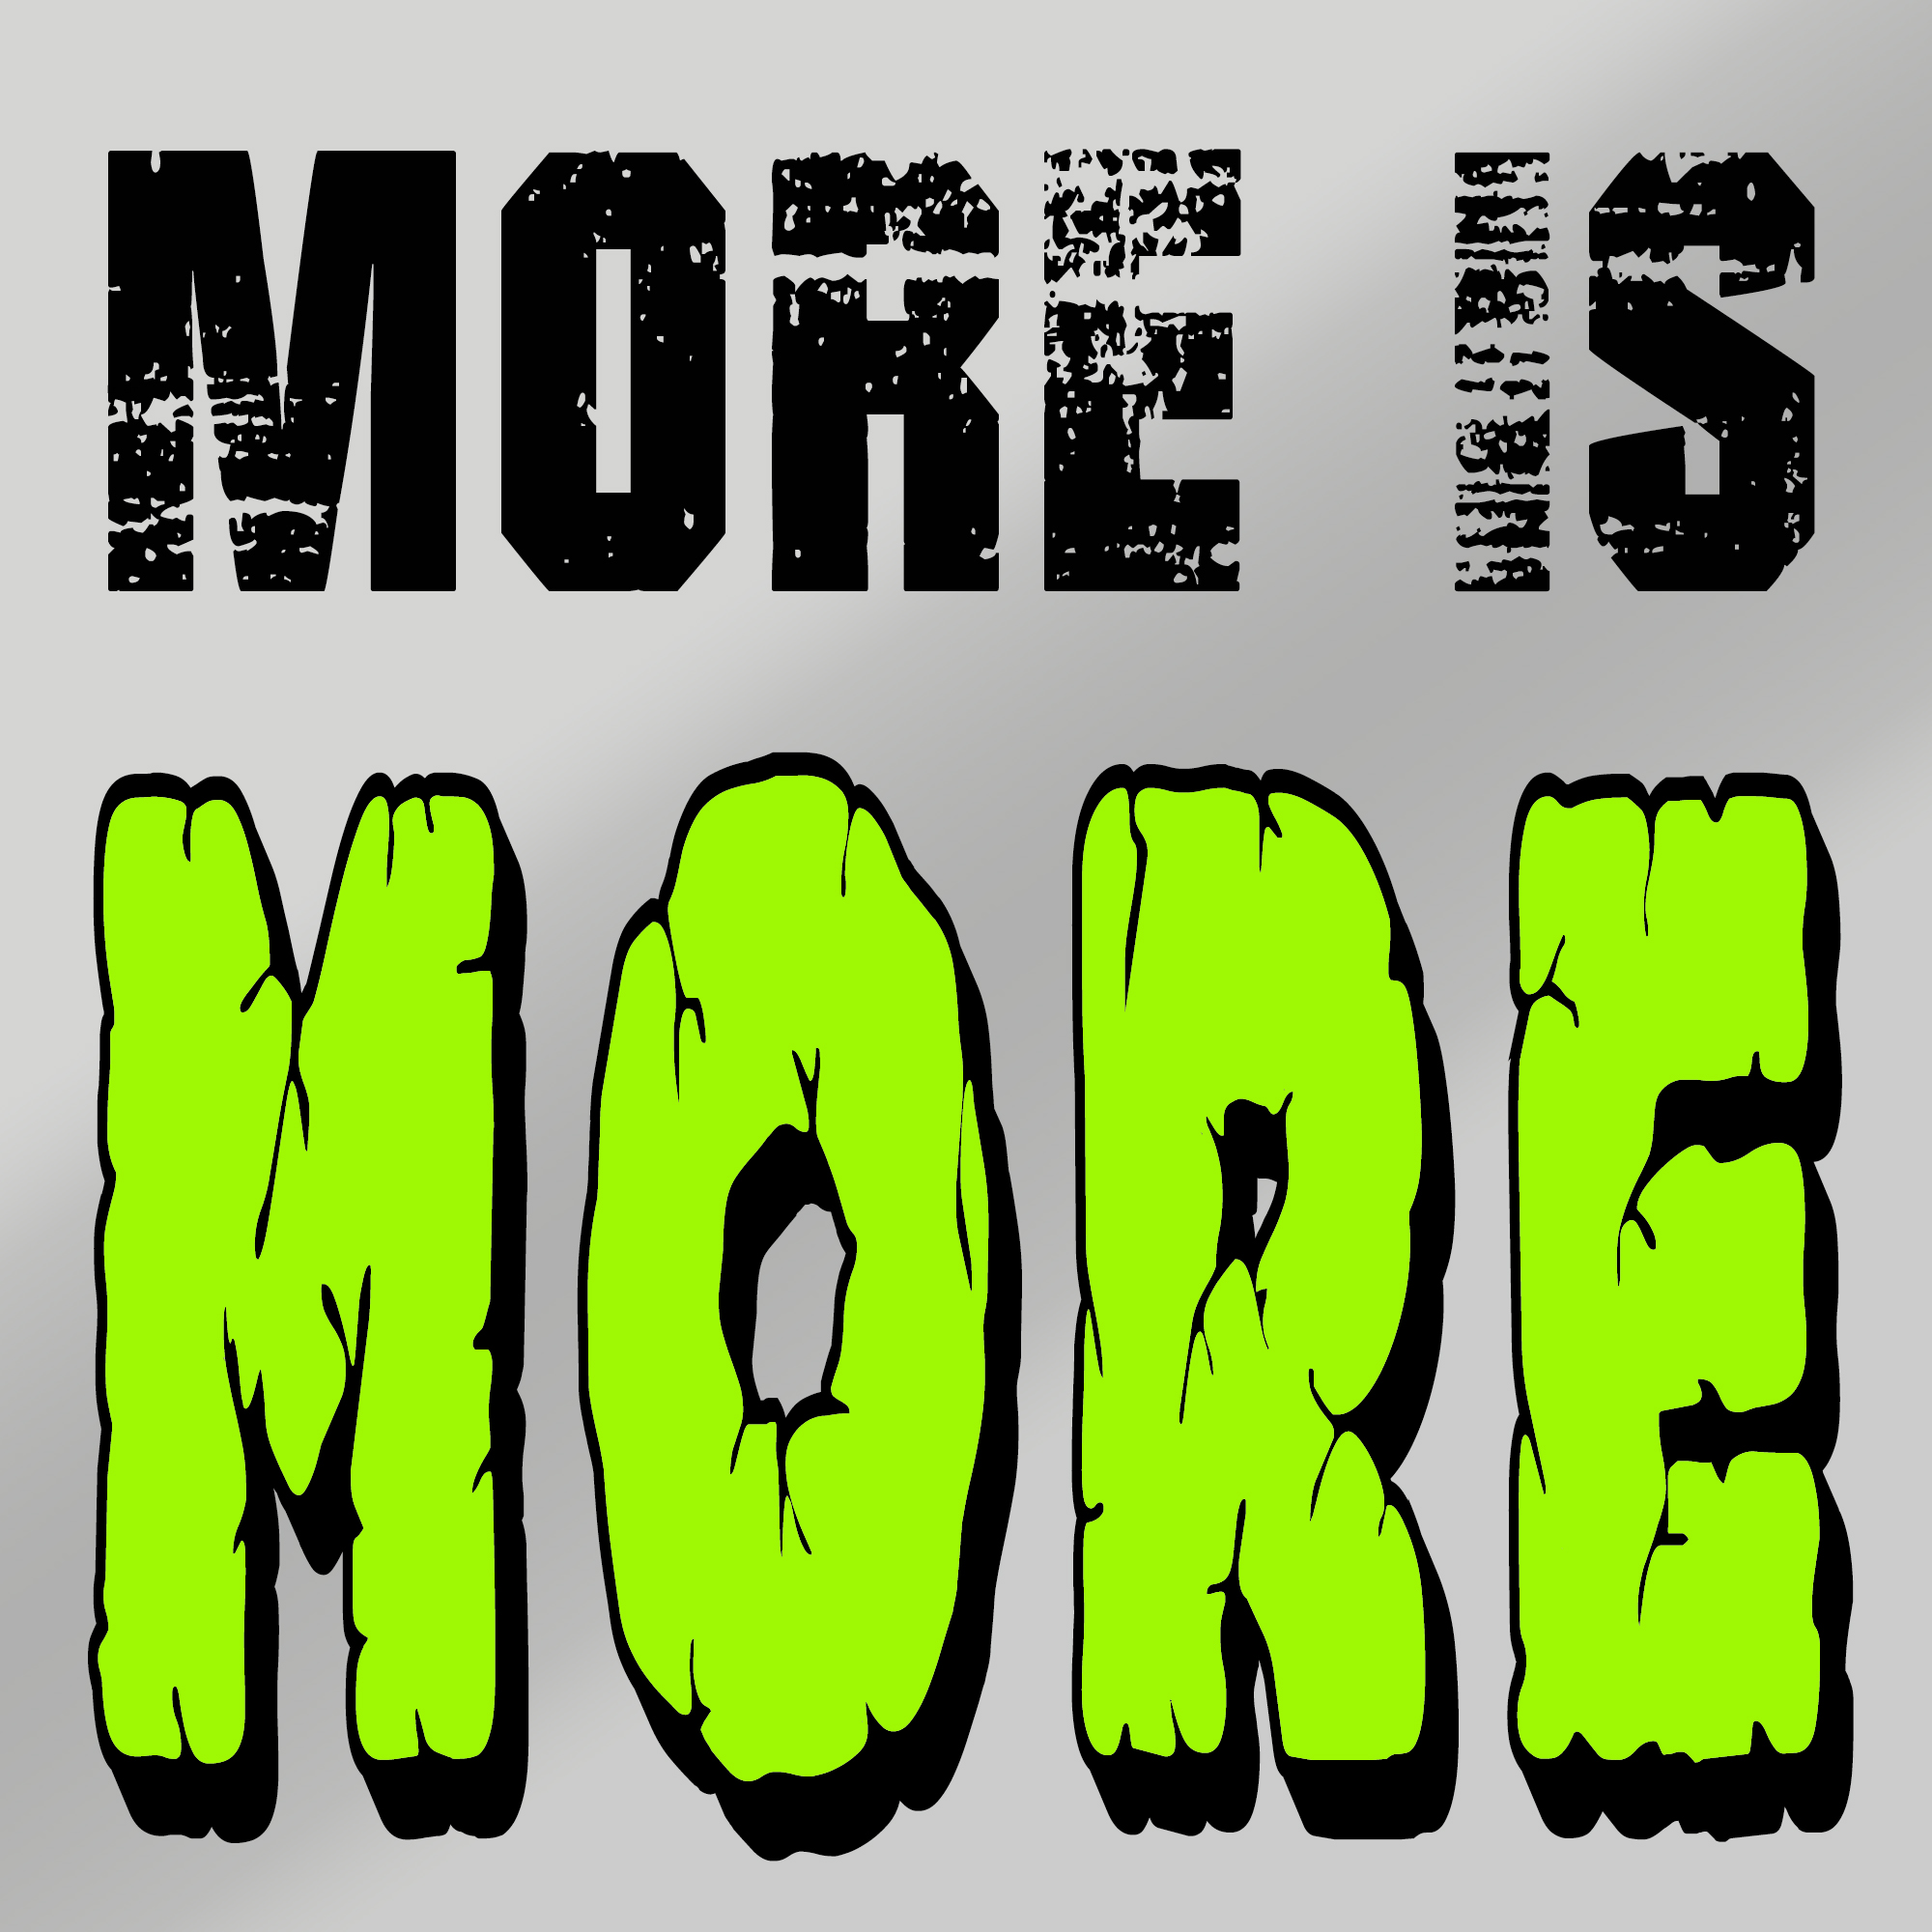 When More is More - Steve Spence